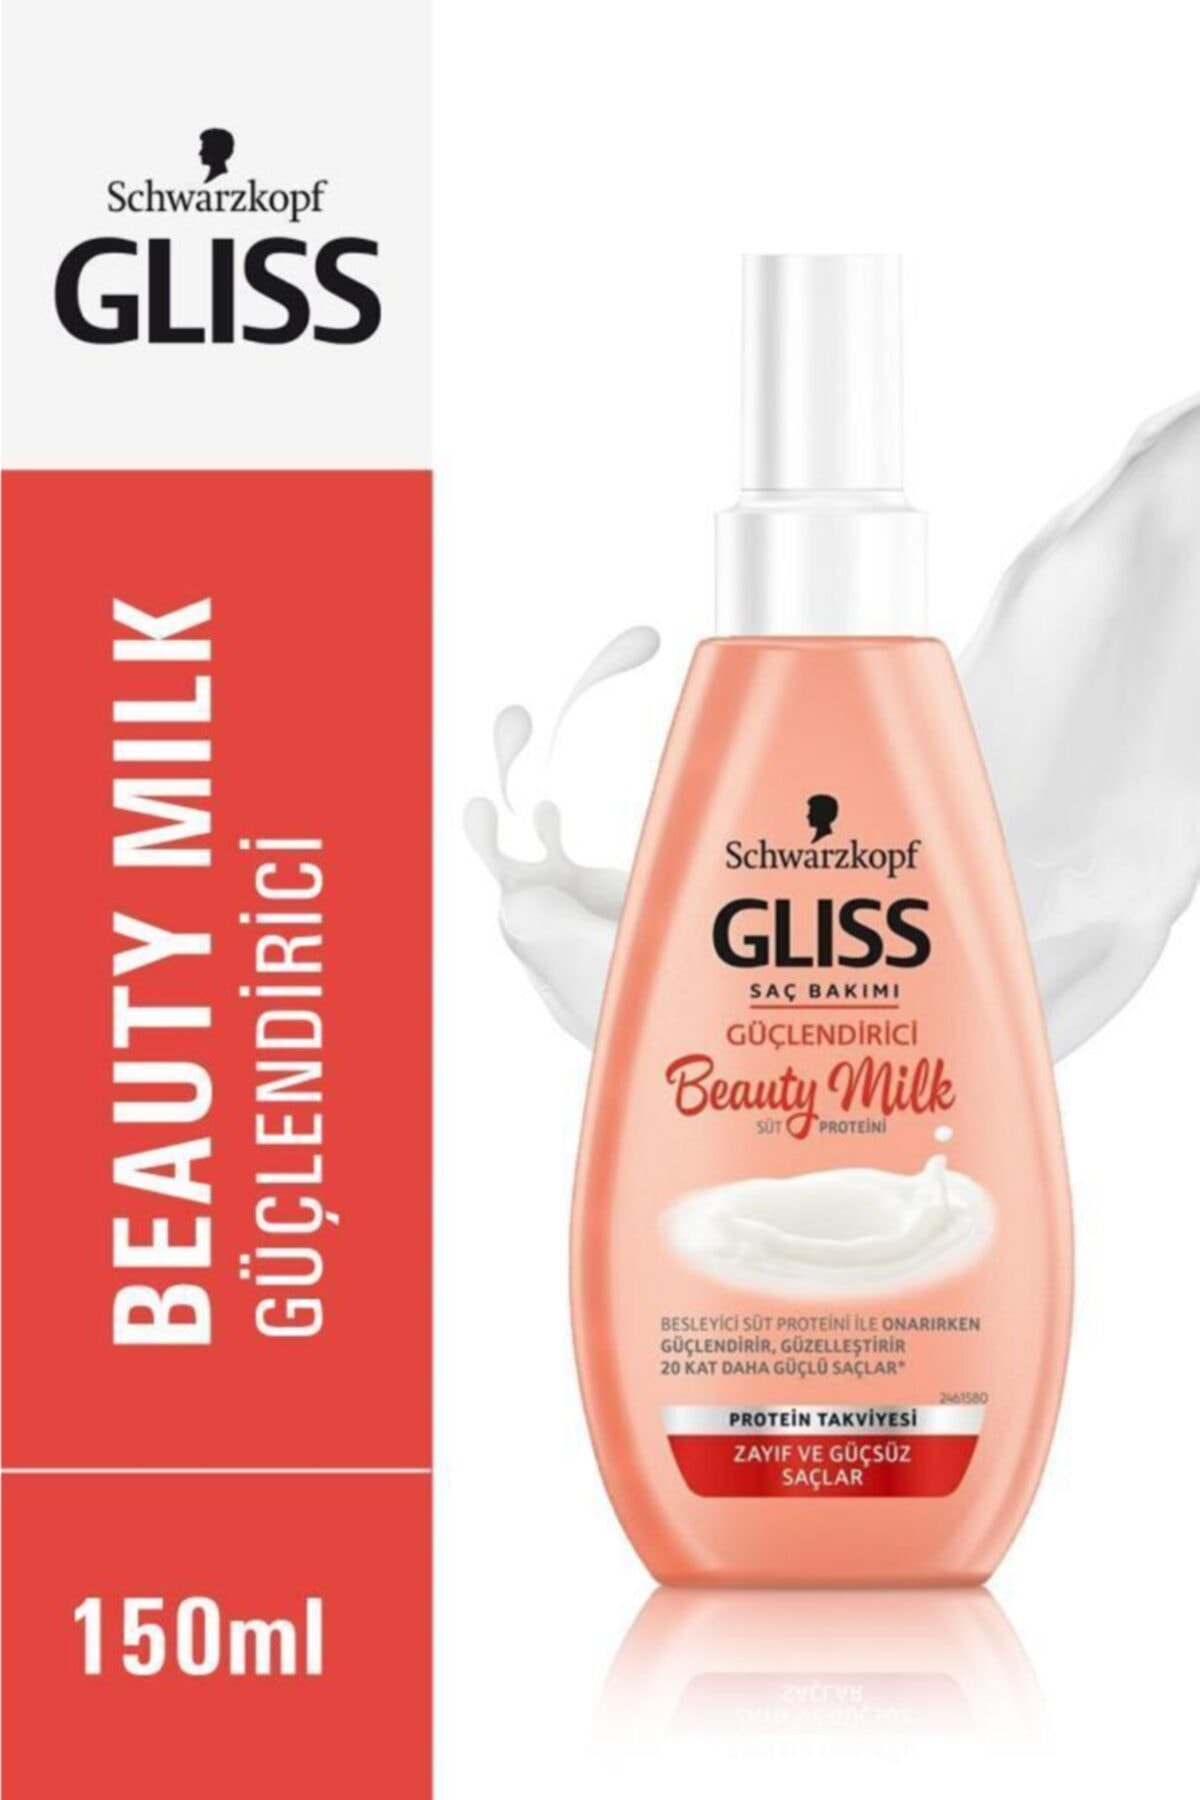 Gliss Schwarzkopf Gliss Beauty Milk-Güçlendirici Bakim Sütü 150 Ml 1